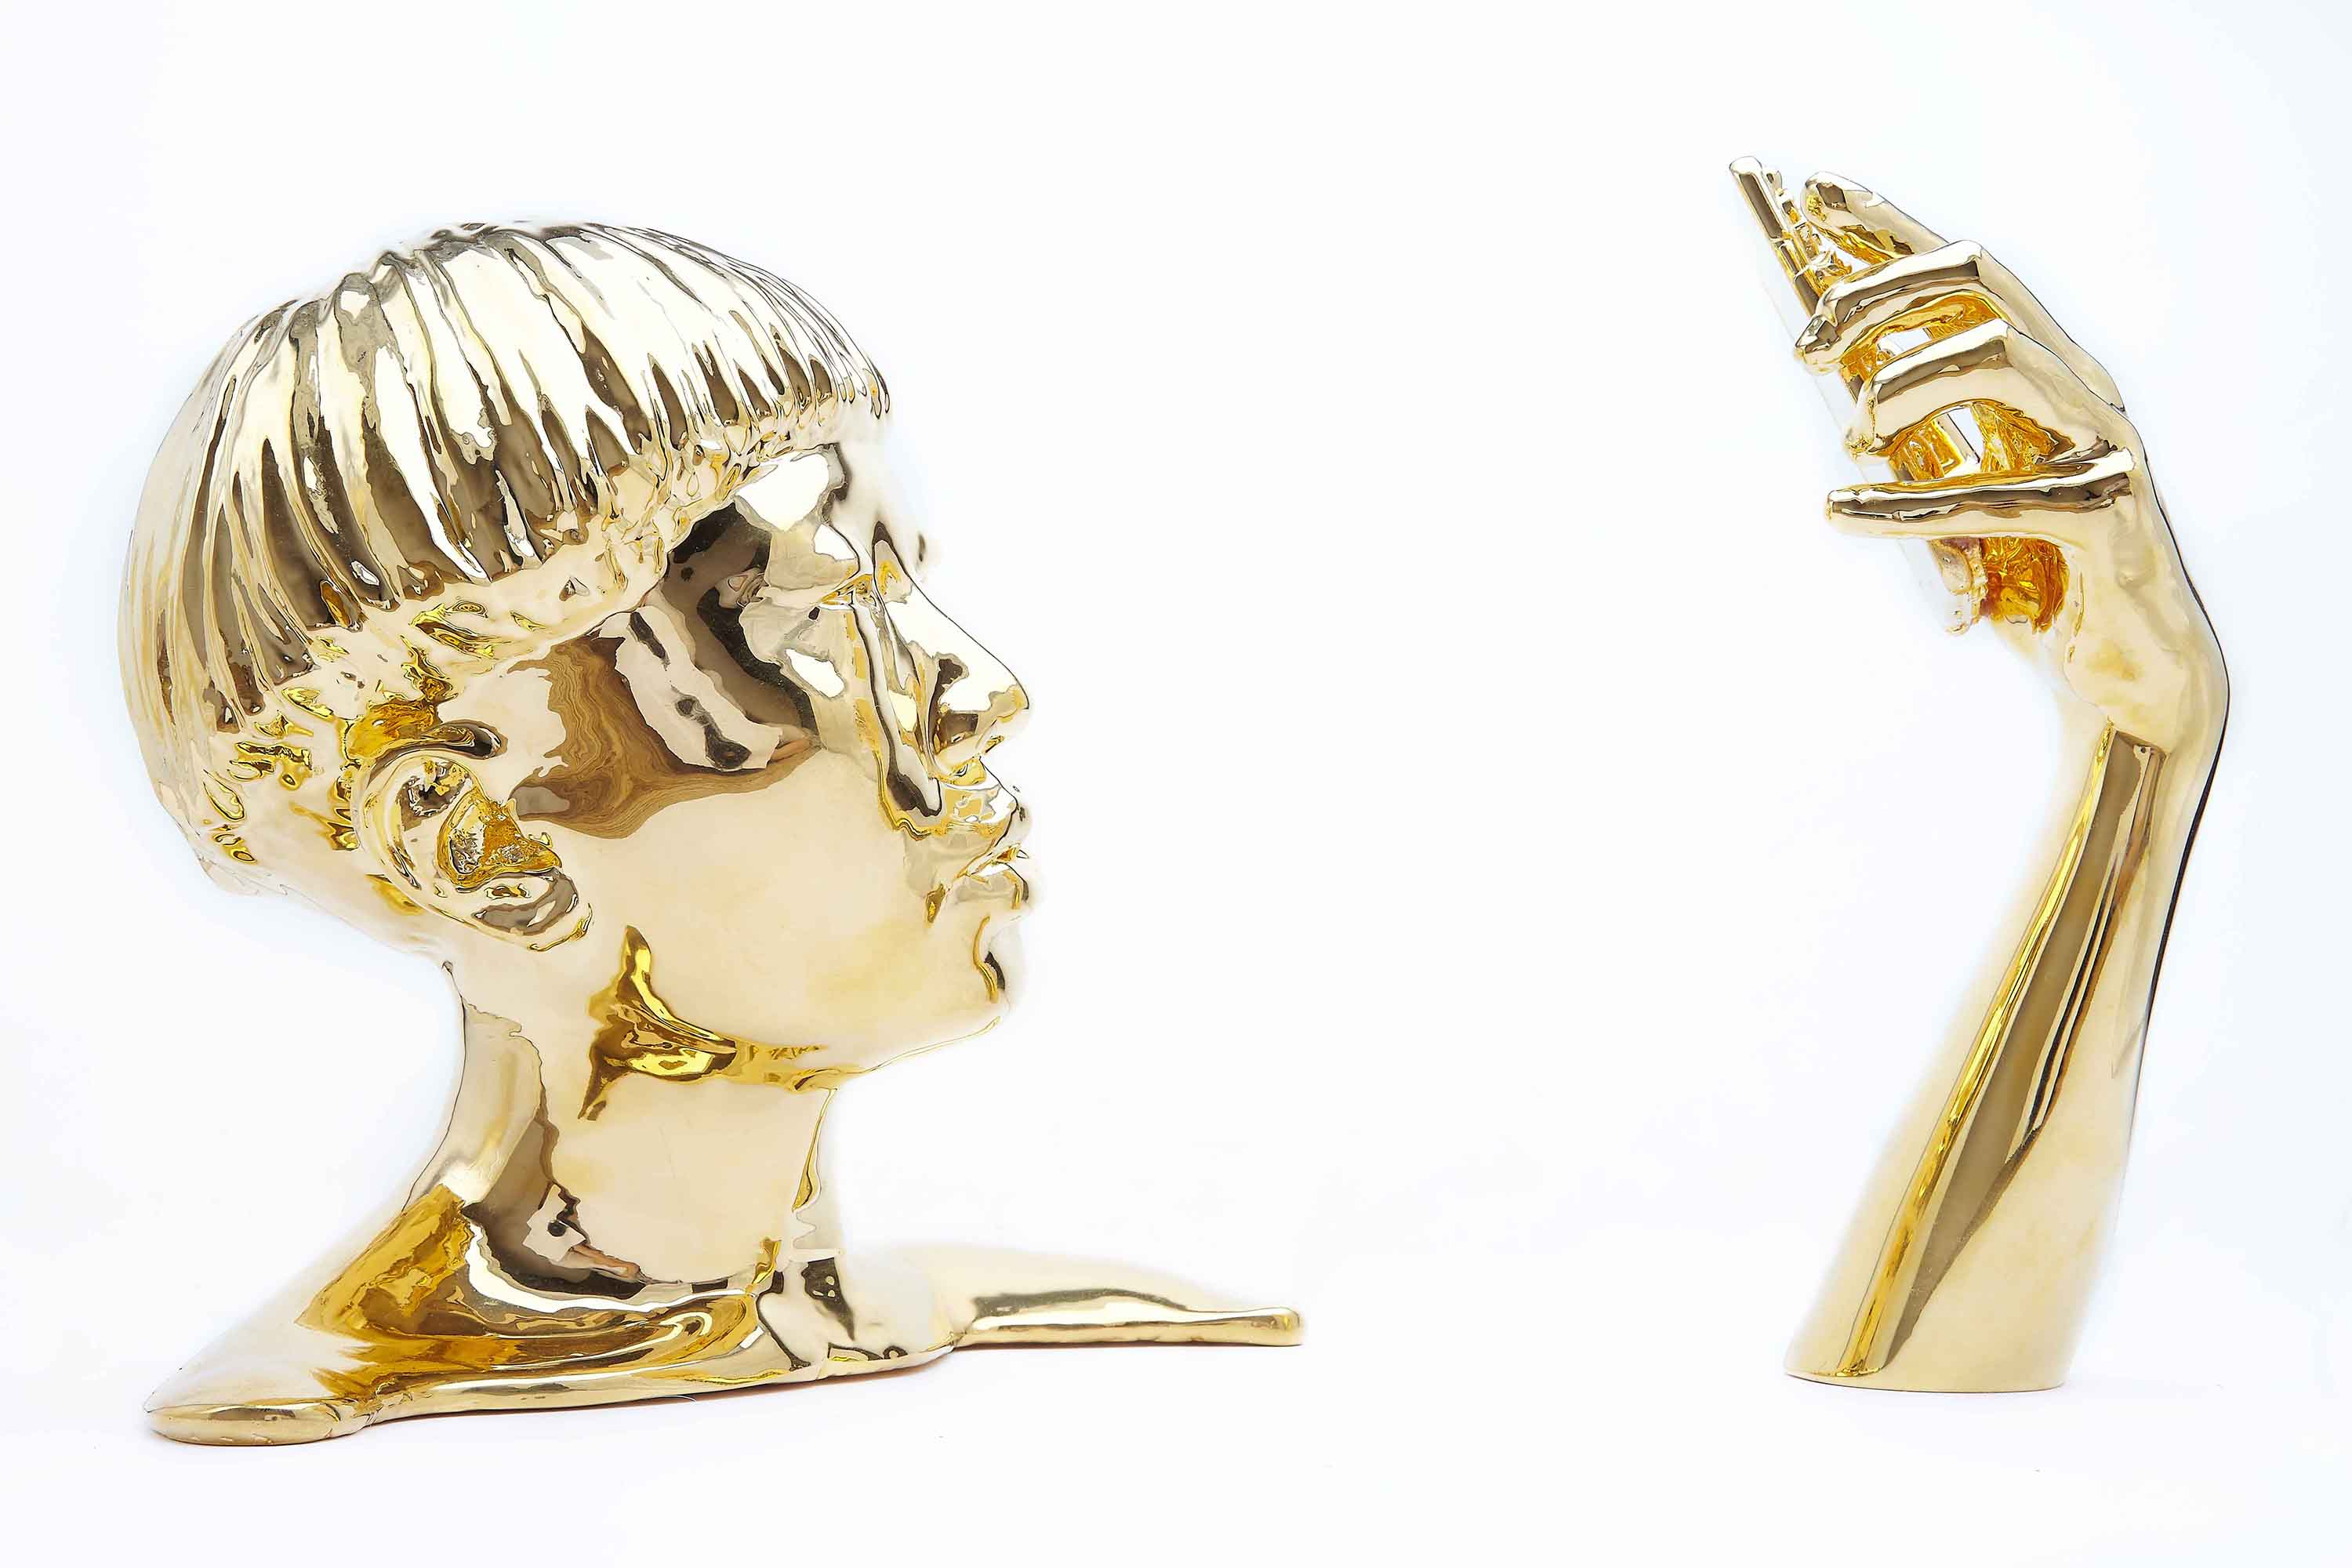 Untitled (JiaJai Fei), 2017, 3D print coated in 24 carat gold, height: 13 in., front of arm to back of head: 20 in. (variable), shoulder to shoulder: 14 in.